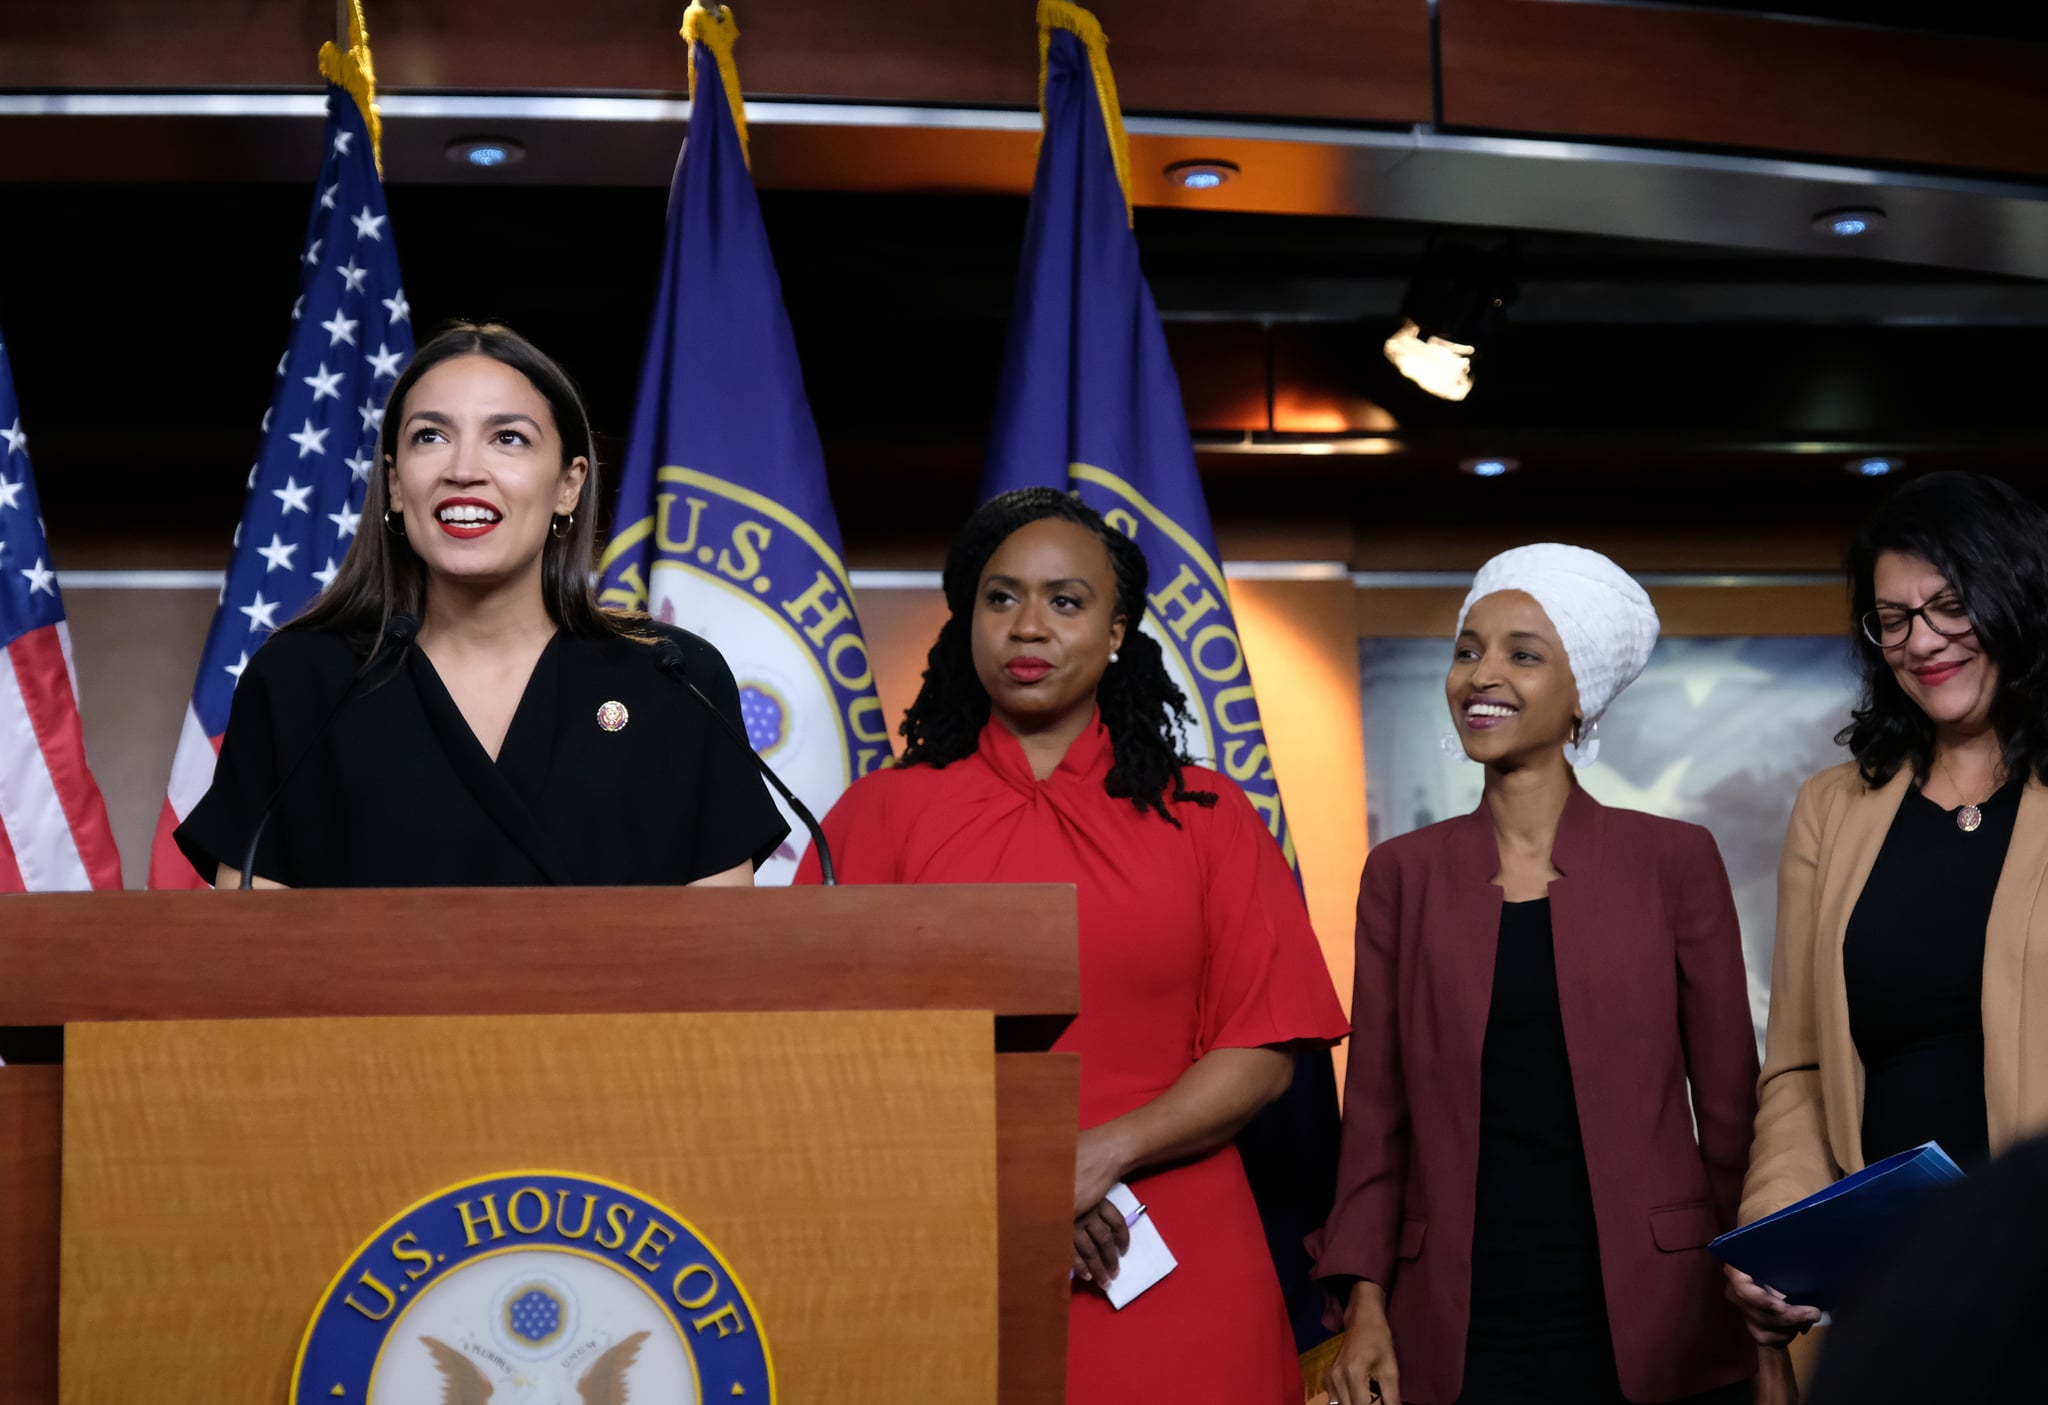 WASHINGTON, DC - JULY 15: U.S. Rep. Alexandria Ocasio-Cortez (D-NY) speaks as Reps. Ayanna Pressley (D-MA), Ilhan Omar (D-MN), and Rashida Tlaib (D-MI) listen during a press conference at the U.S. Capitol on July 15, 2019 in Washington, DC. President Donald Trump stepped up his attacks on four progressive Democratic congresswomen, saying if they're not happy in the United States